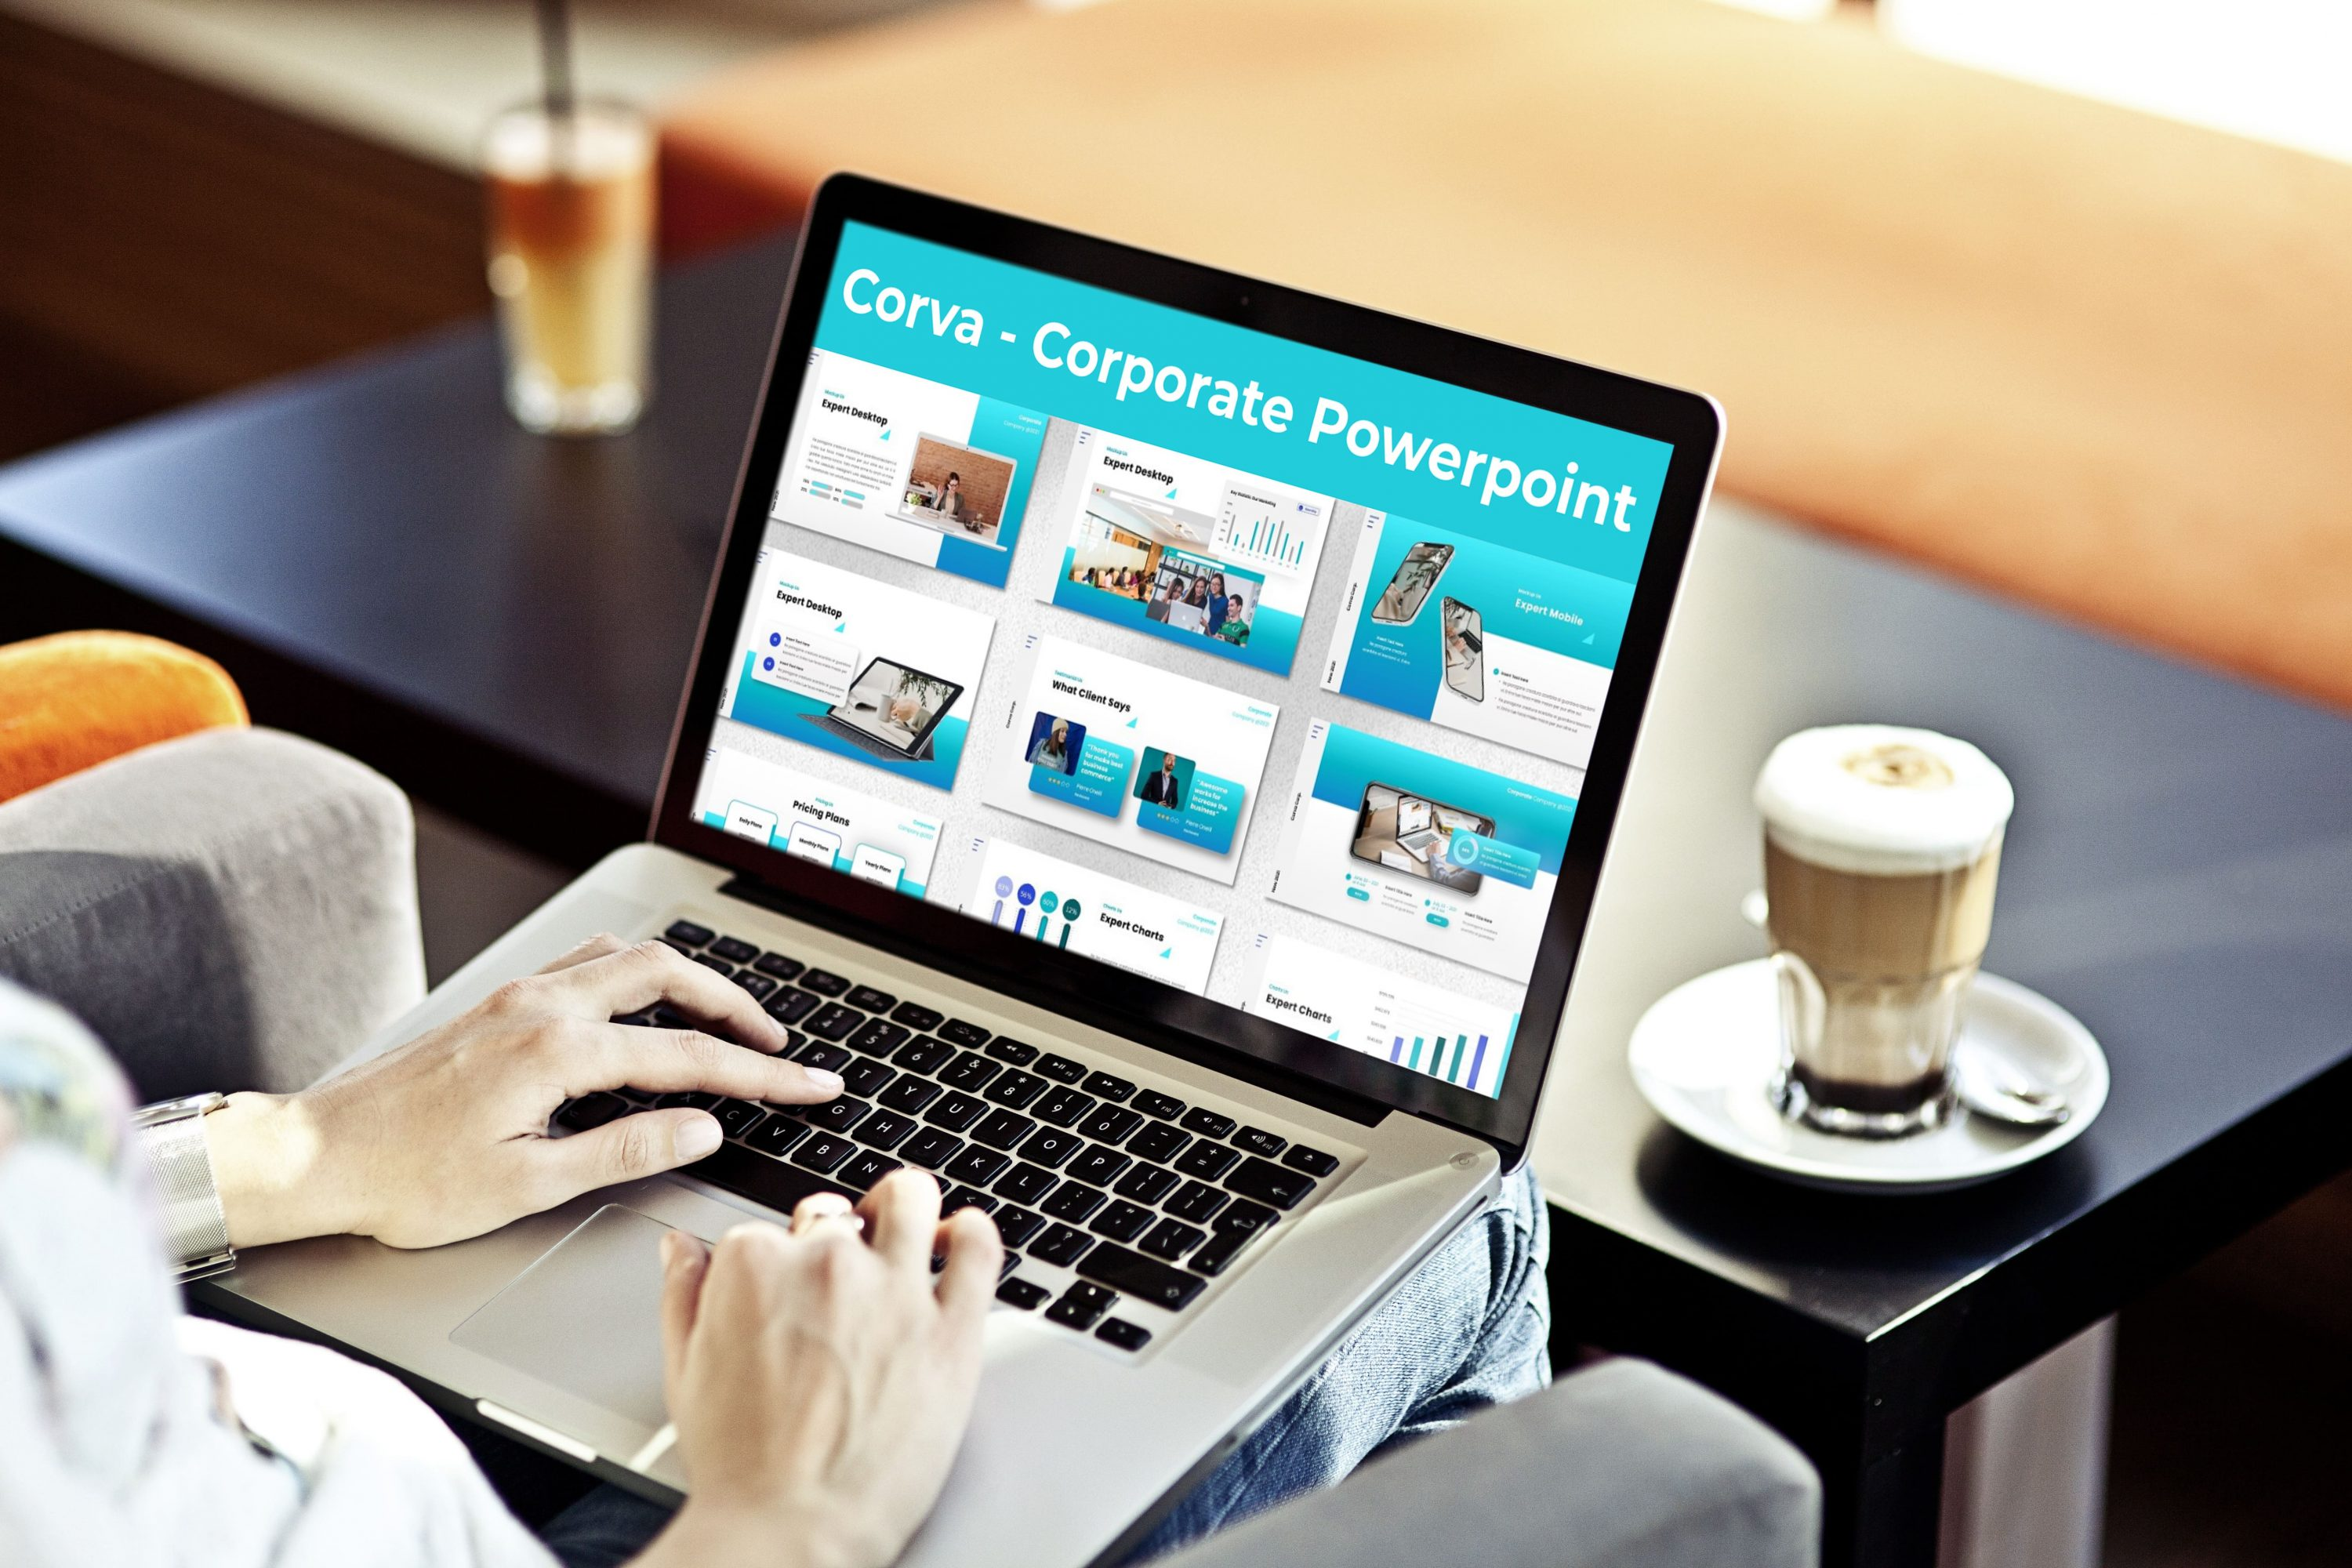 Laptop option of the Corva - Corporate Powerpoint.